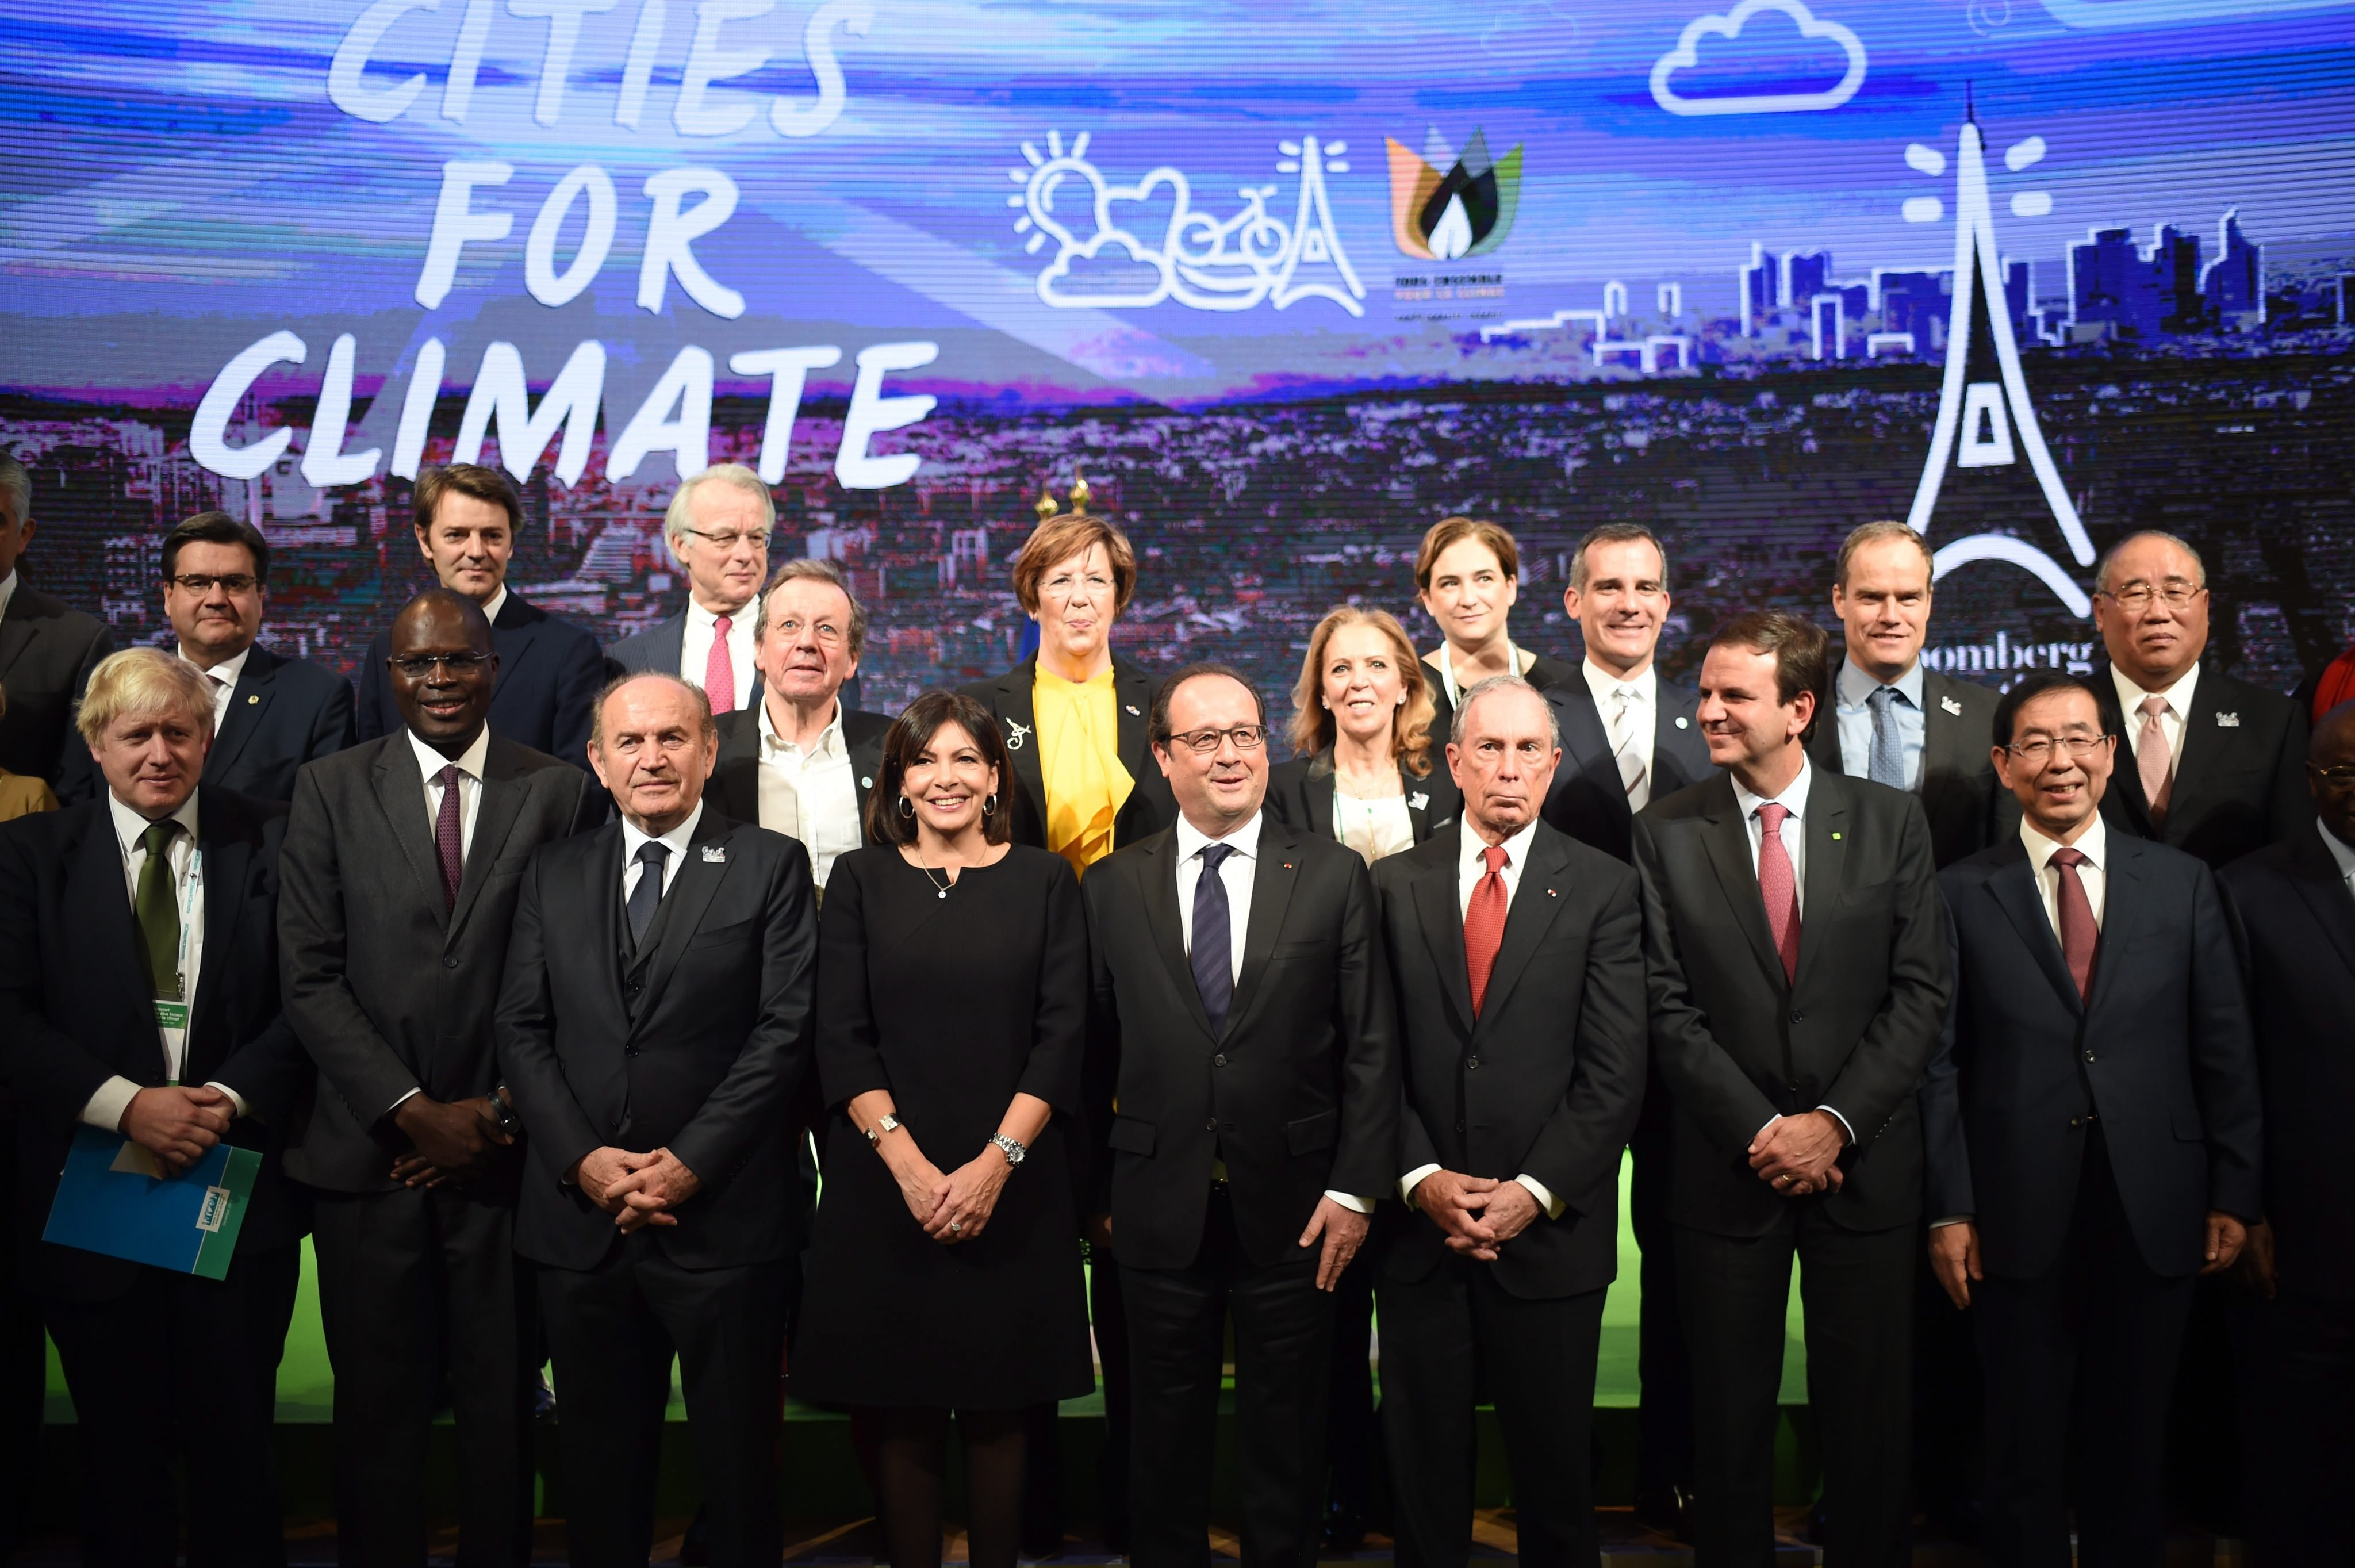 Paris Climate Summit: 5 Facts to Know | Time